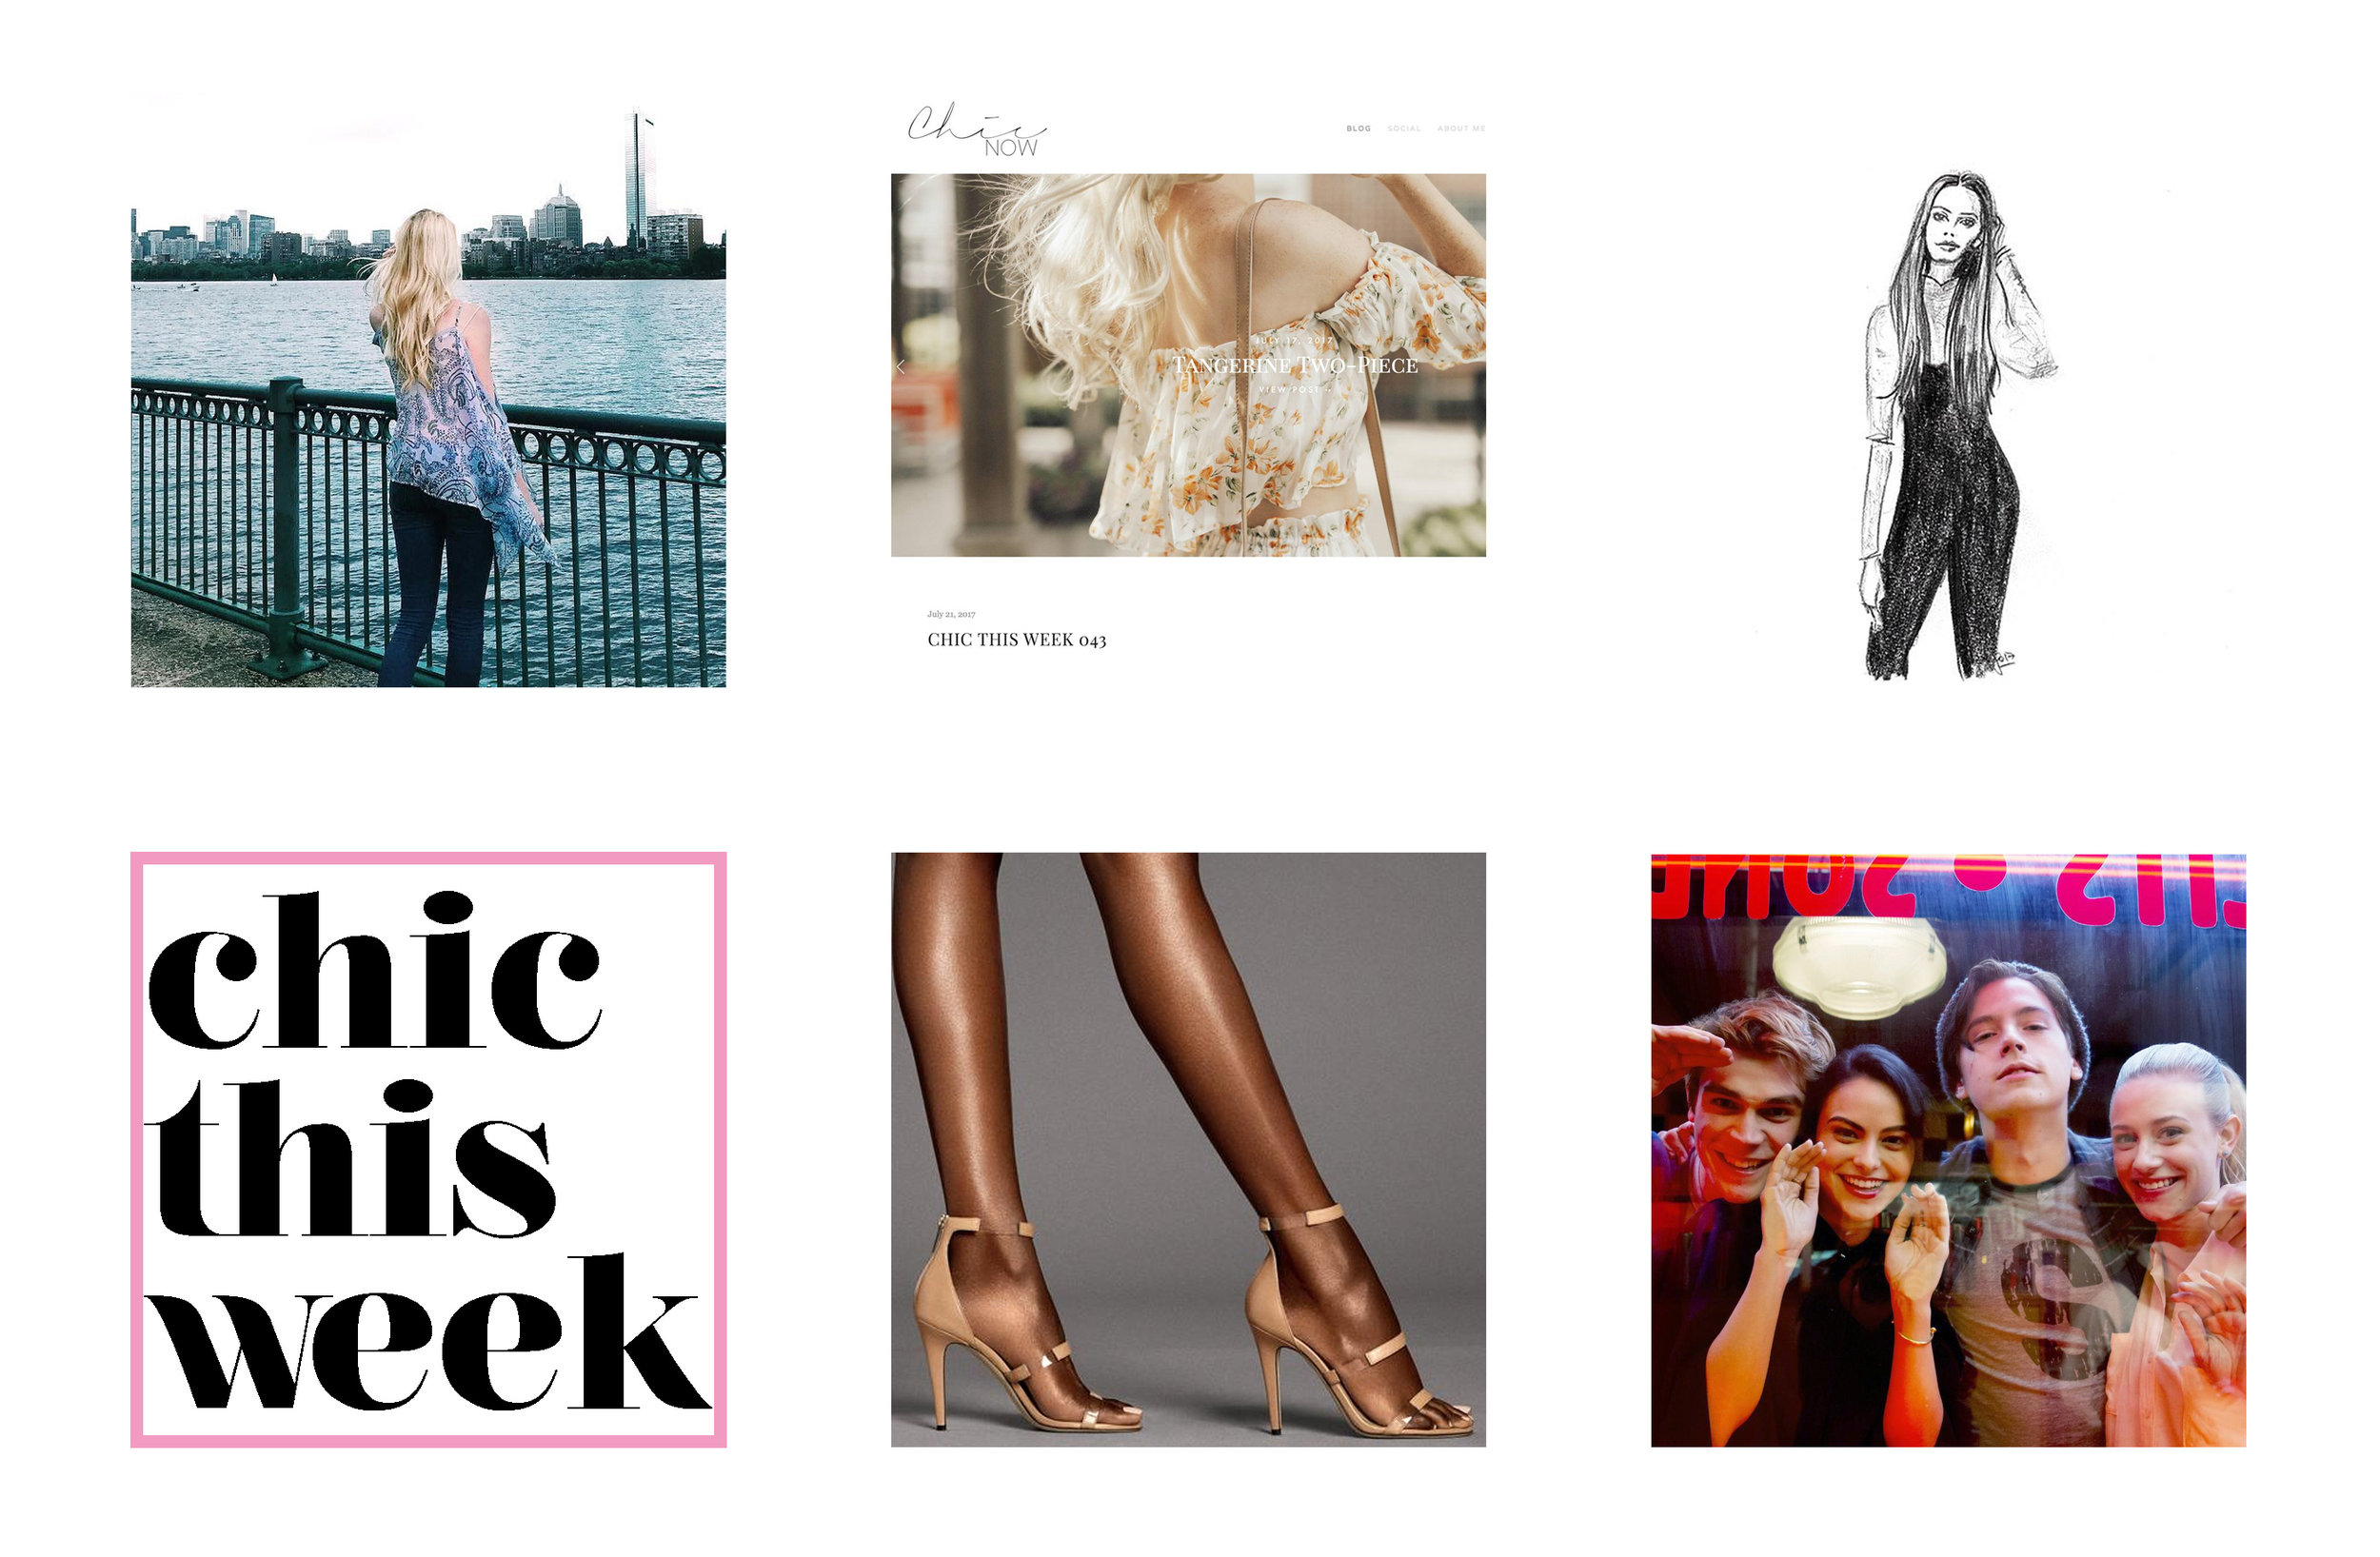 What's Chic This Week (v. 044)